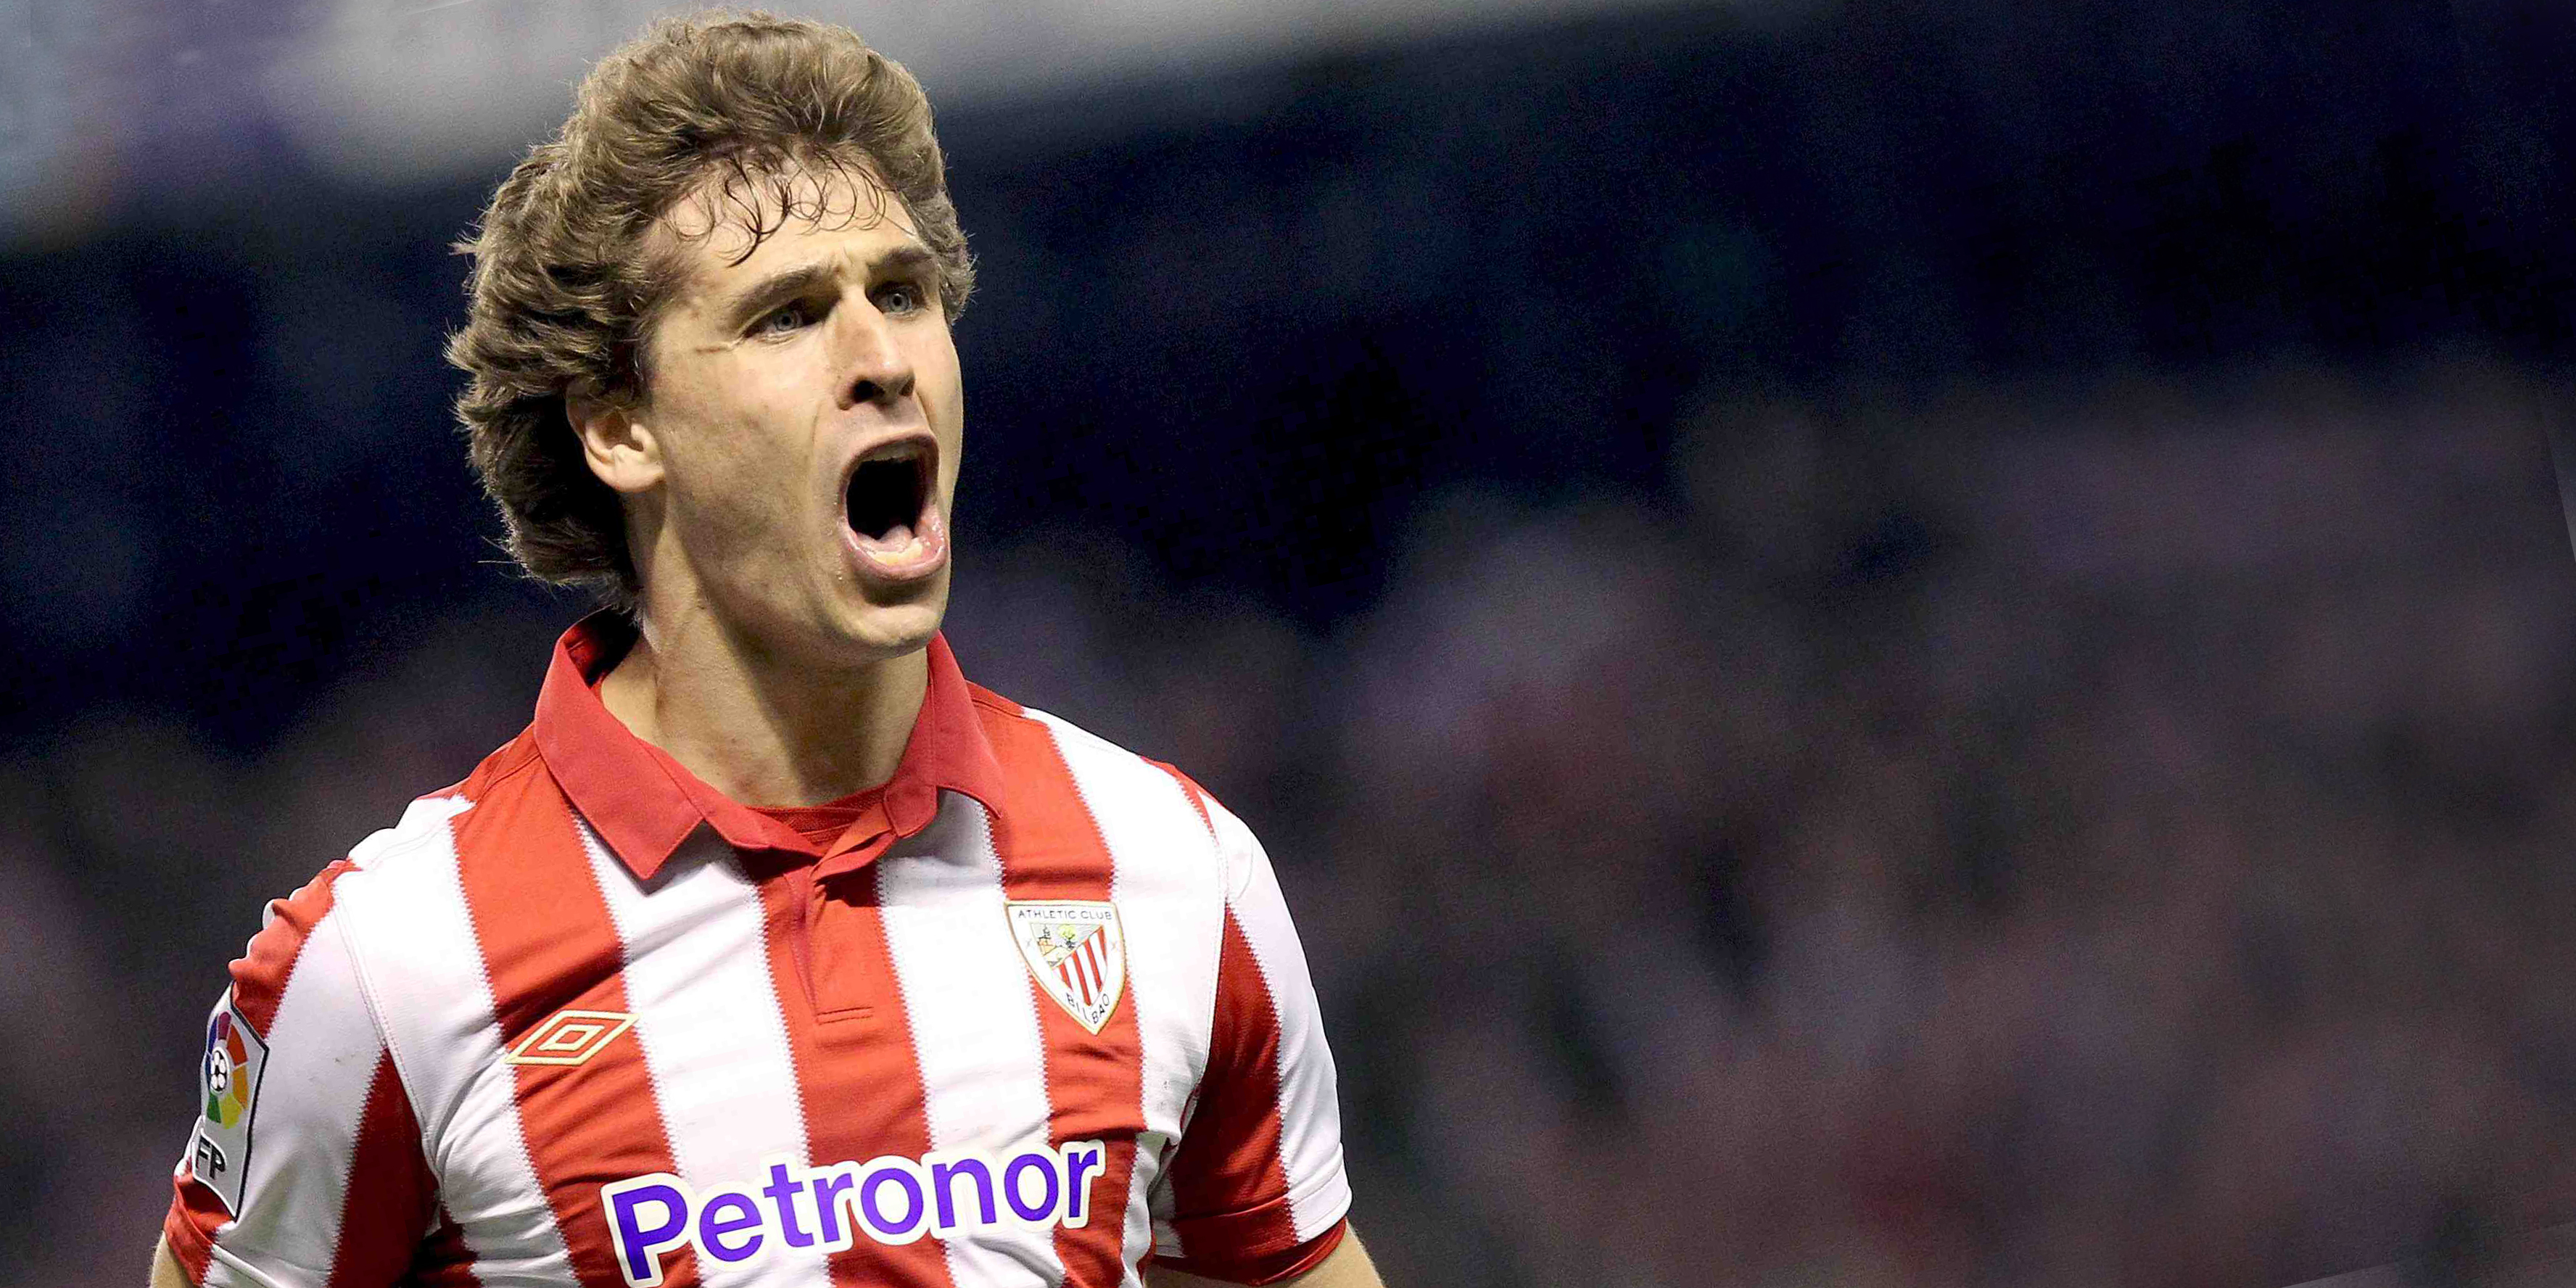 Copa_del_Rei-Athletic_Club-Fernando_Llorente_ARAIMA20110106_0053_11